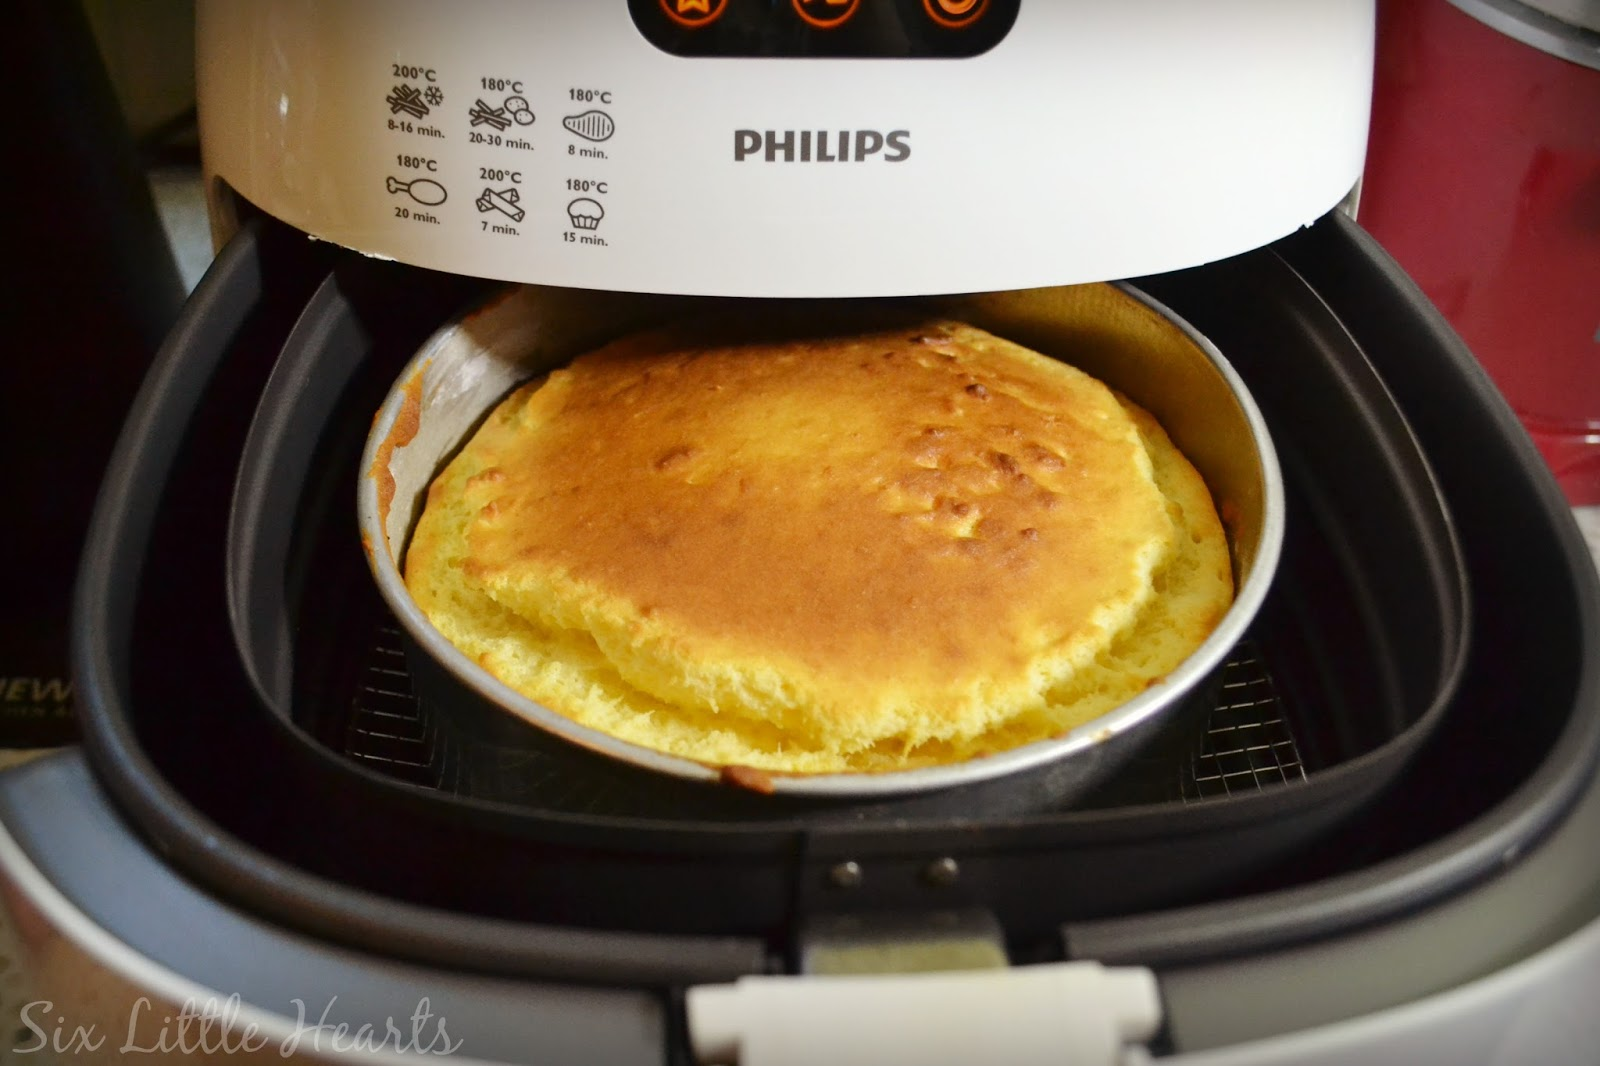 Philips airfryer review and recipes plus win a philips viva airfryer